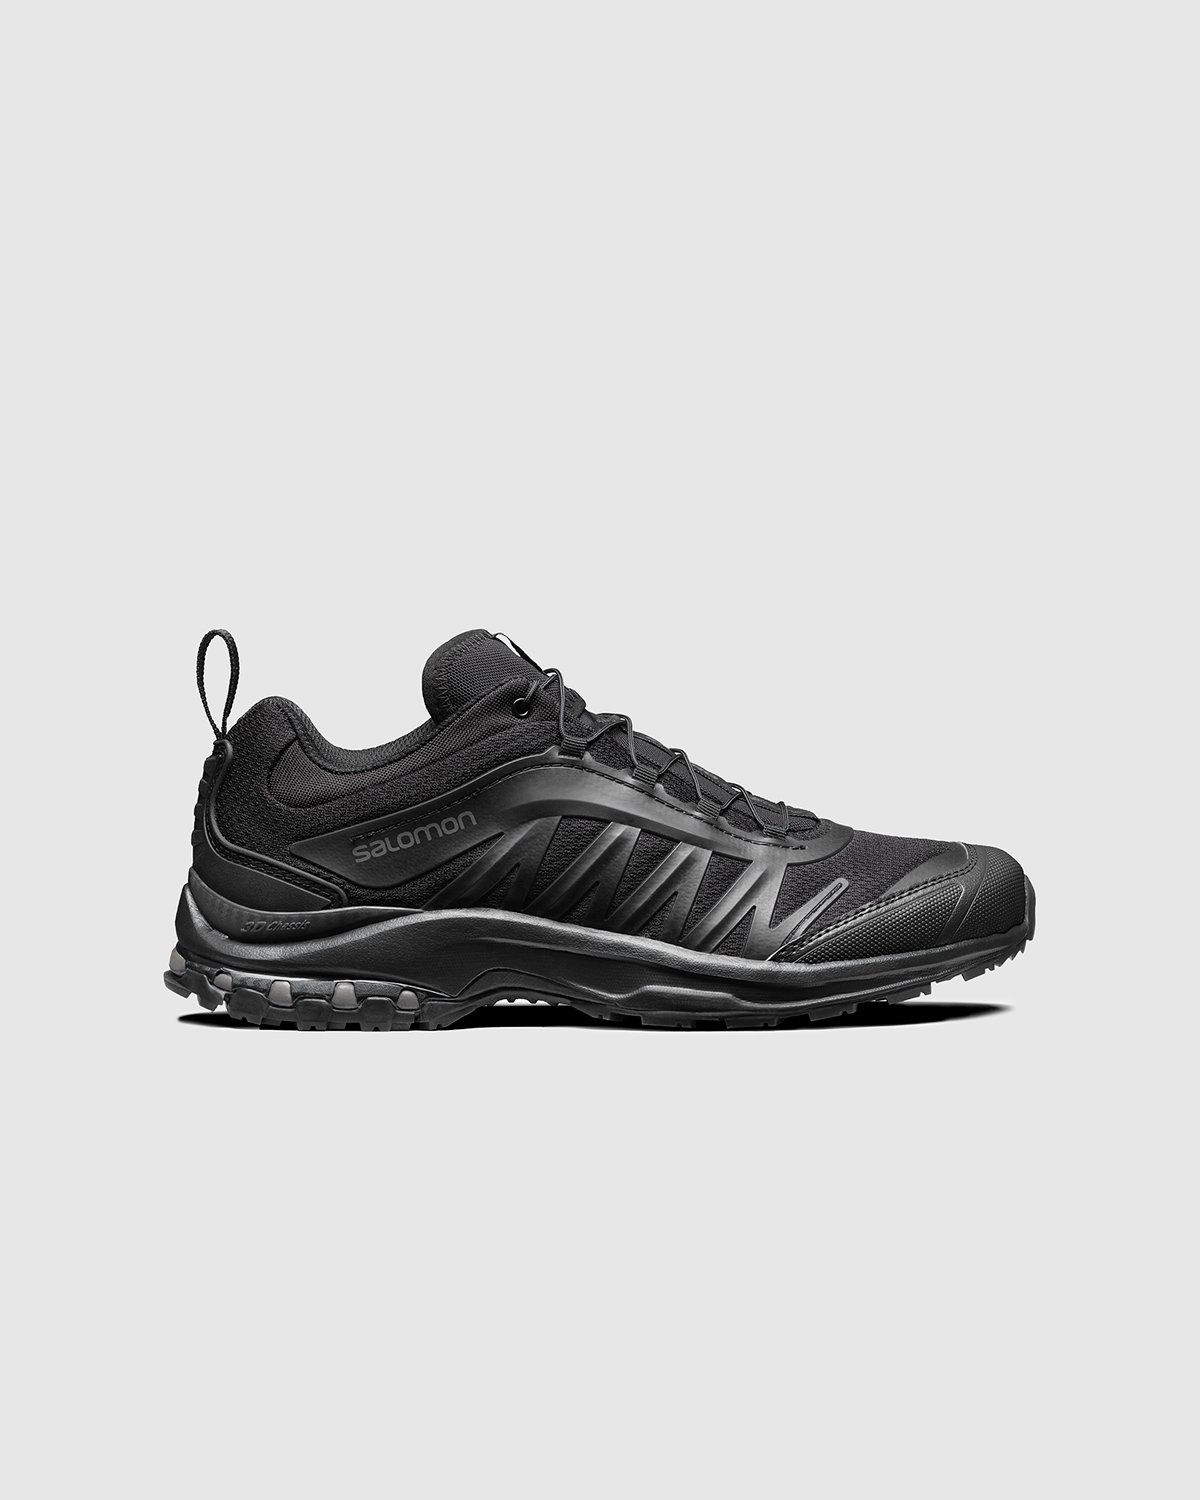 Salomon - XA-PRO FUSION ADVANCED - Black/Black/Magnet - Image 1